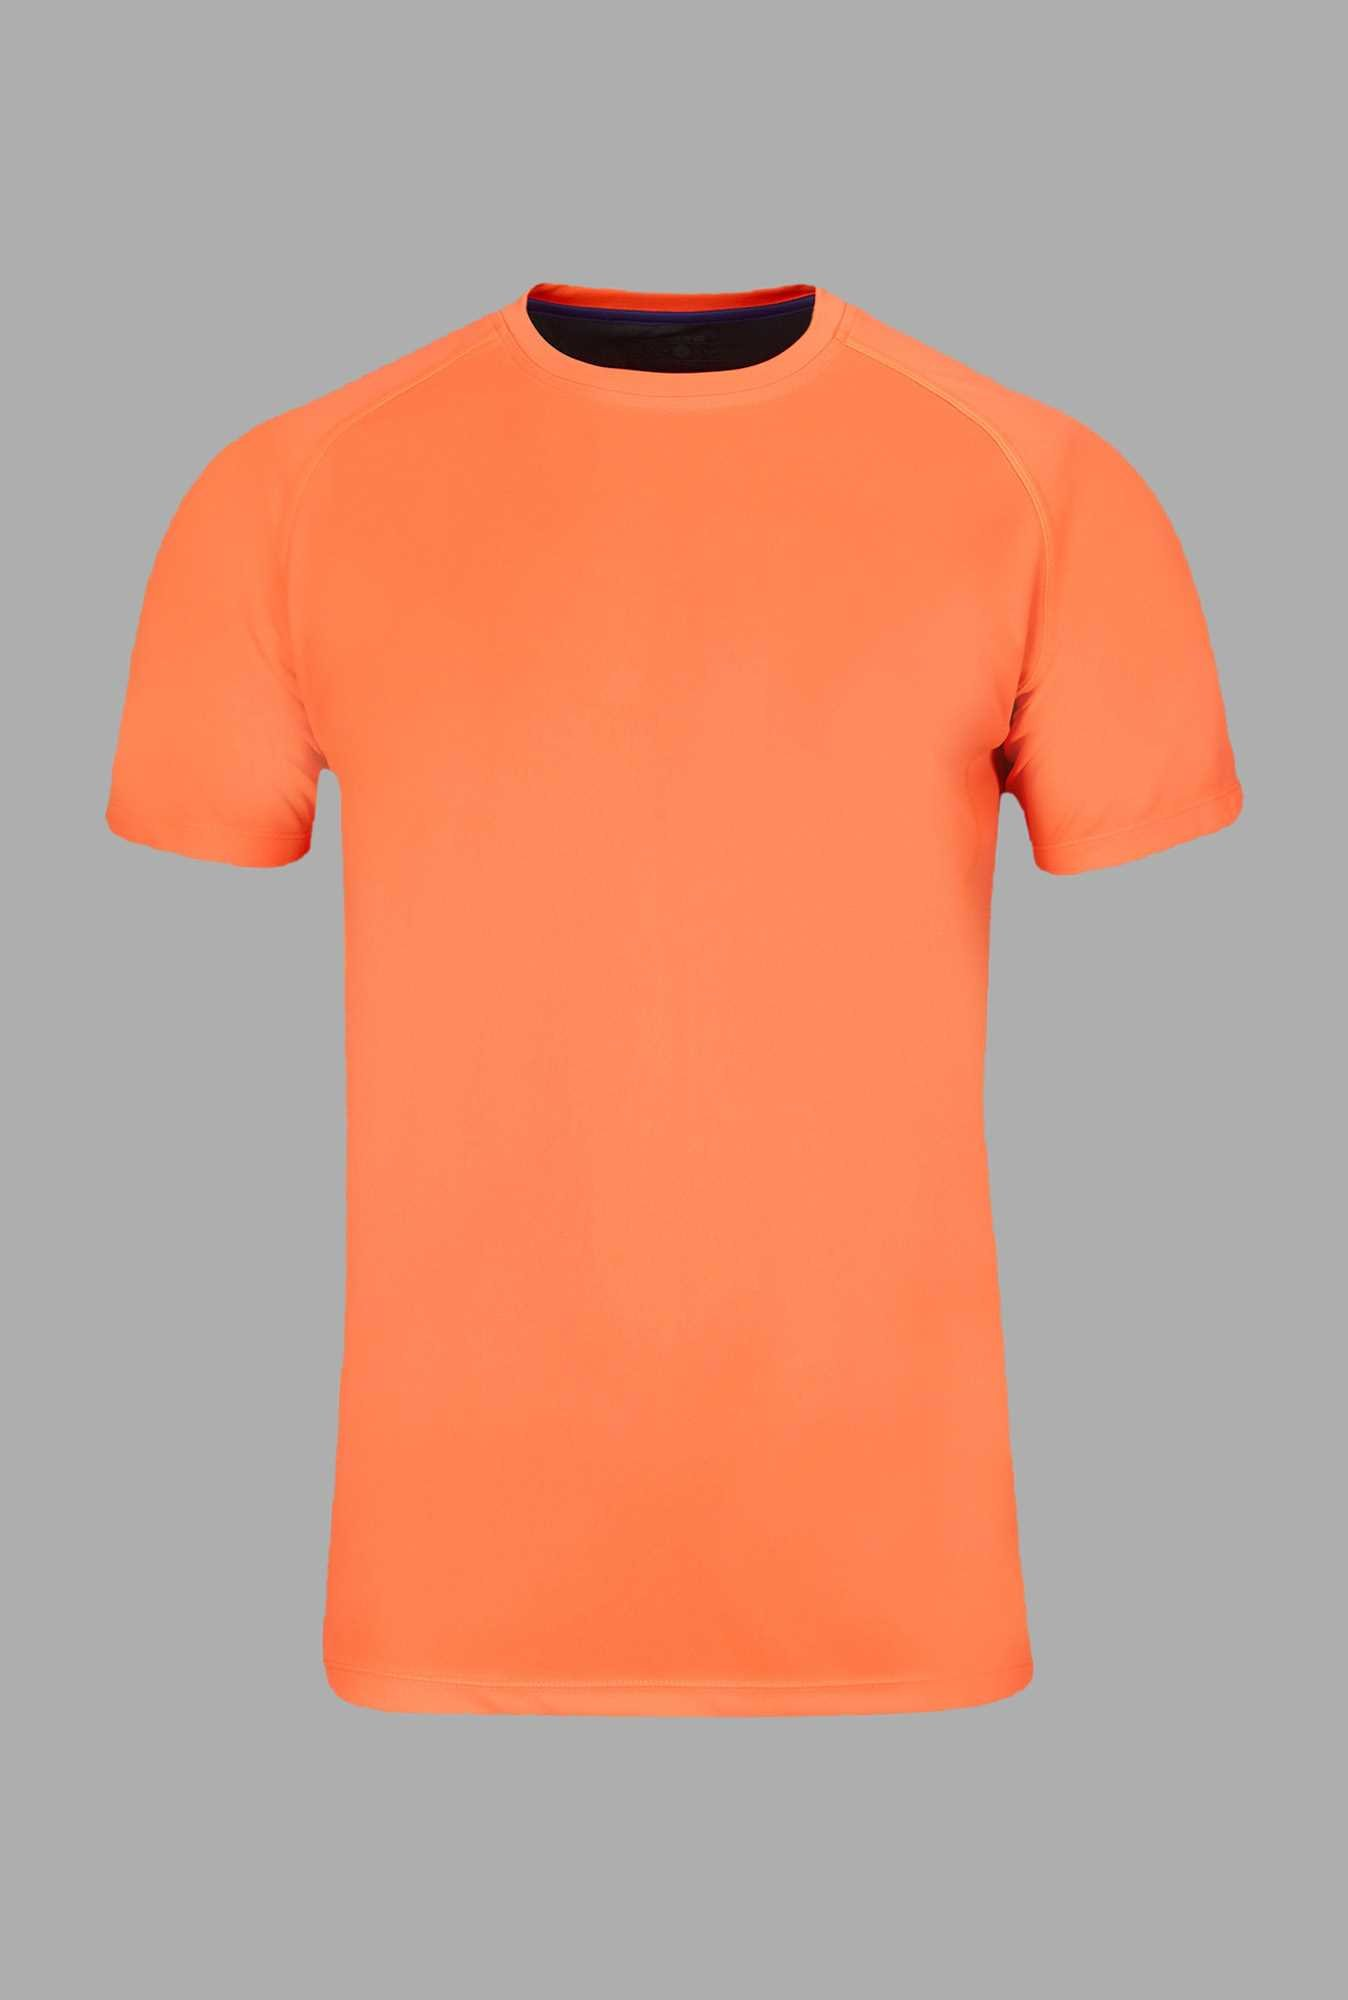 Doone Orange Training T Shirt